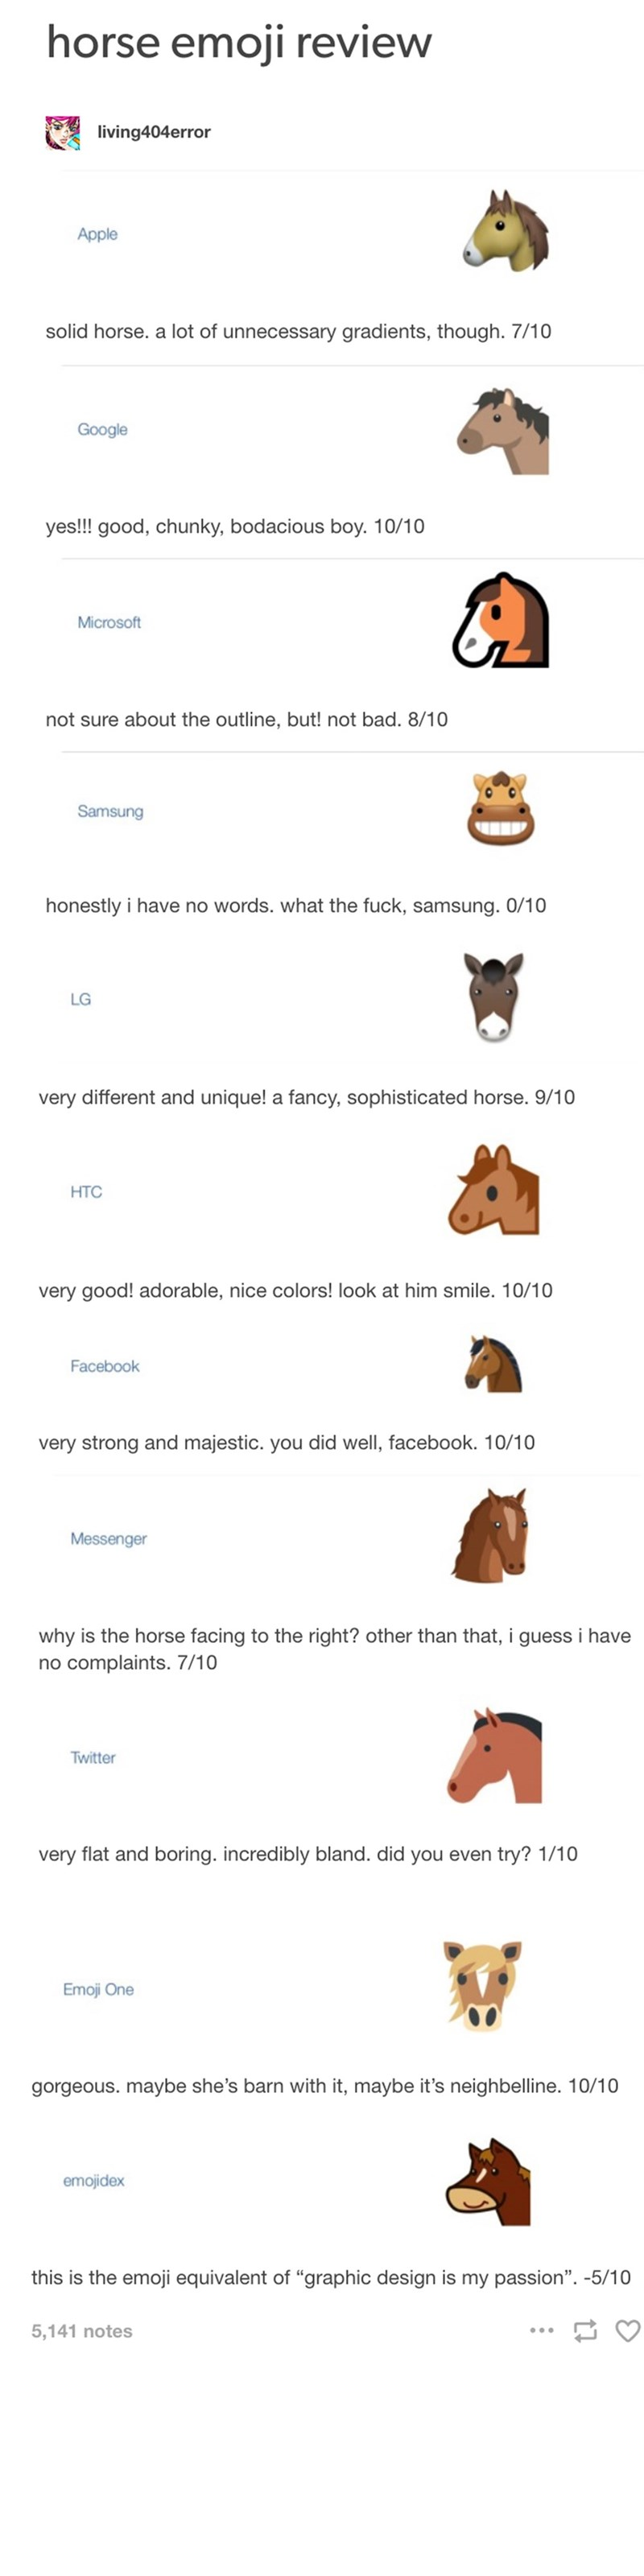 Text - horse emoji review living404error Apple solid horse. a lot of unnecessary gradients, though. 7/10 Google yes!! good, chunky, bodacious boy. 10/10 Microsoft not sure about the outline, but! not bad. 8/10 Samsung honestly i have no words. what the fuck, samsung. 0/10 LG very different and unique! a fancy, sophisticated horse. 9/10 HTC very good! adorable, nice colors! look at him smile. 10/10 Facebook very strong and majestic. you did well, facebook. 10/10 Messenger why is the horse facing